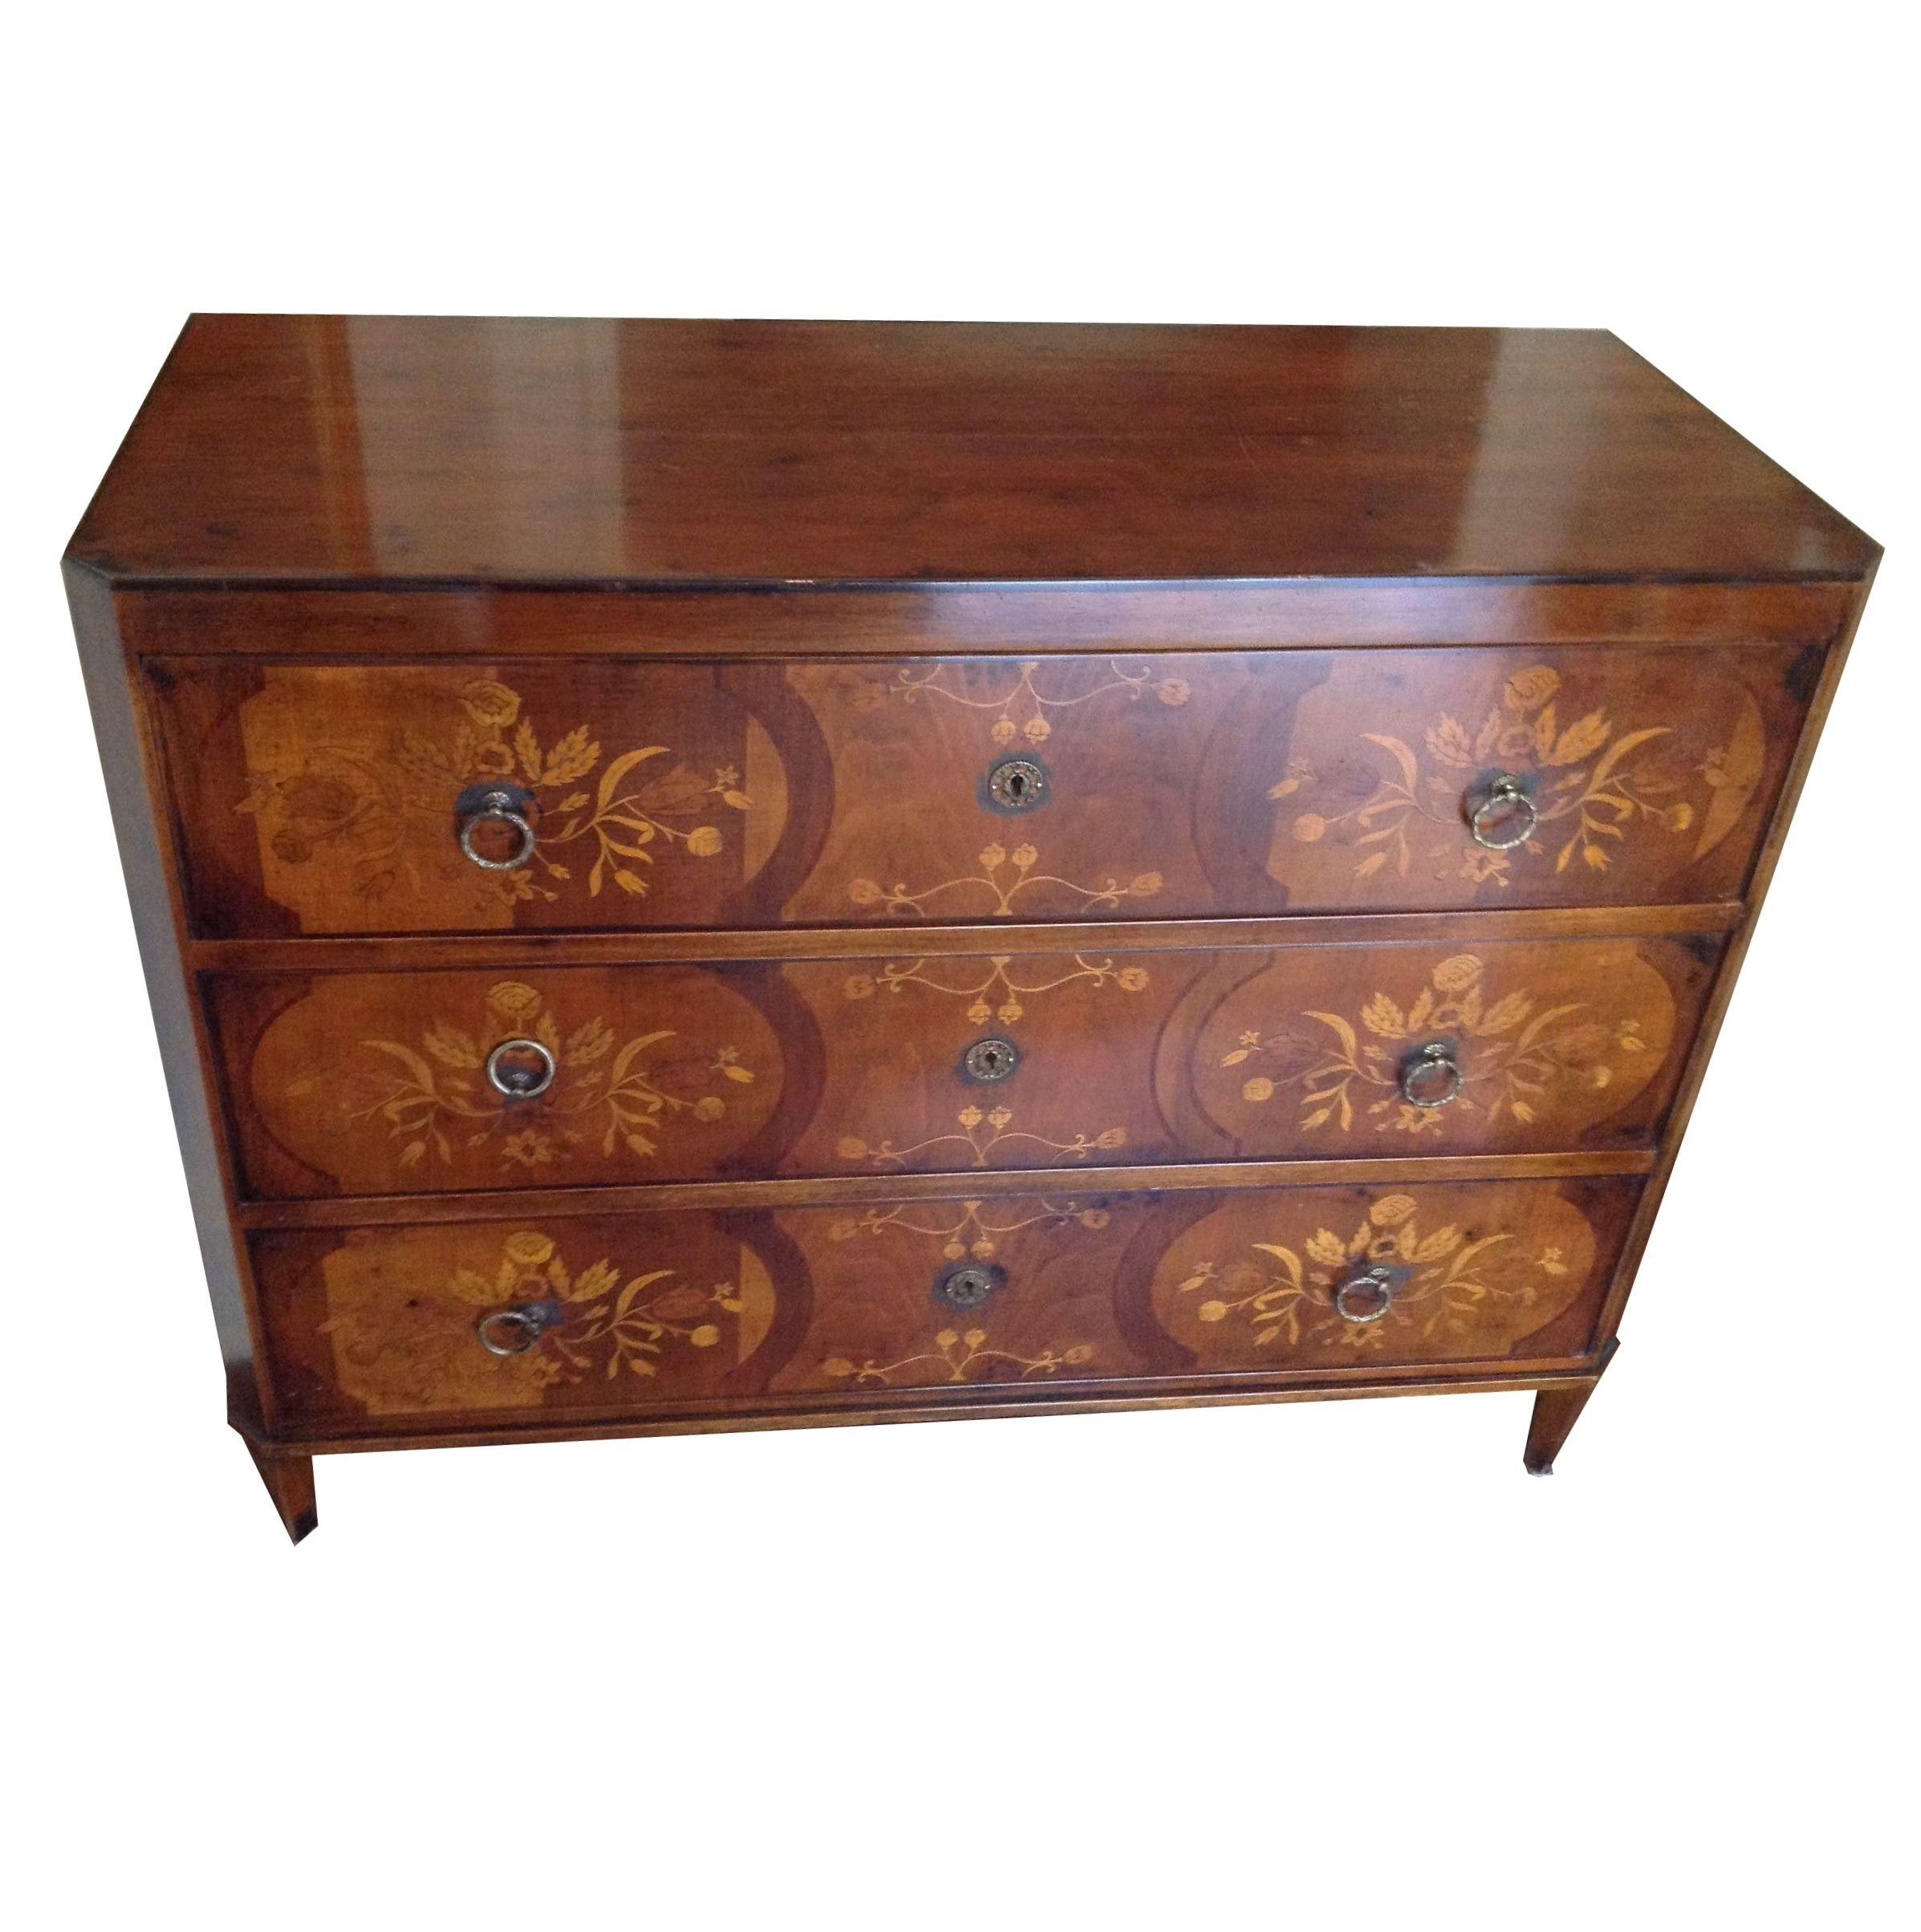 Neoclassic Style Italian Chest on Chairish.com